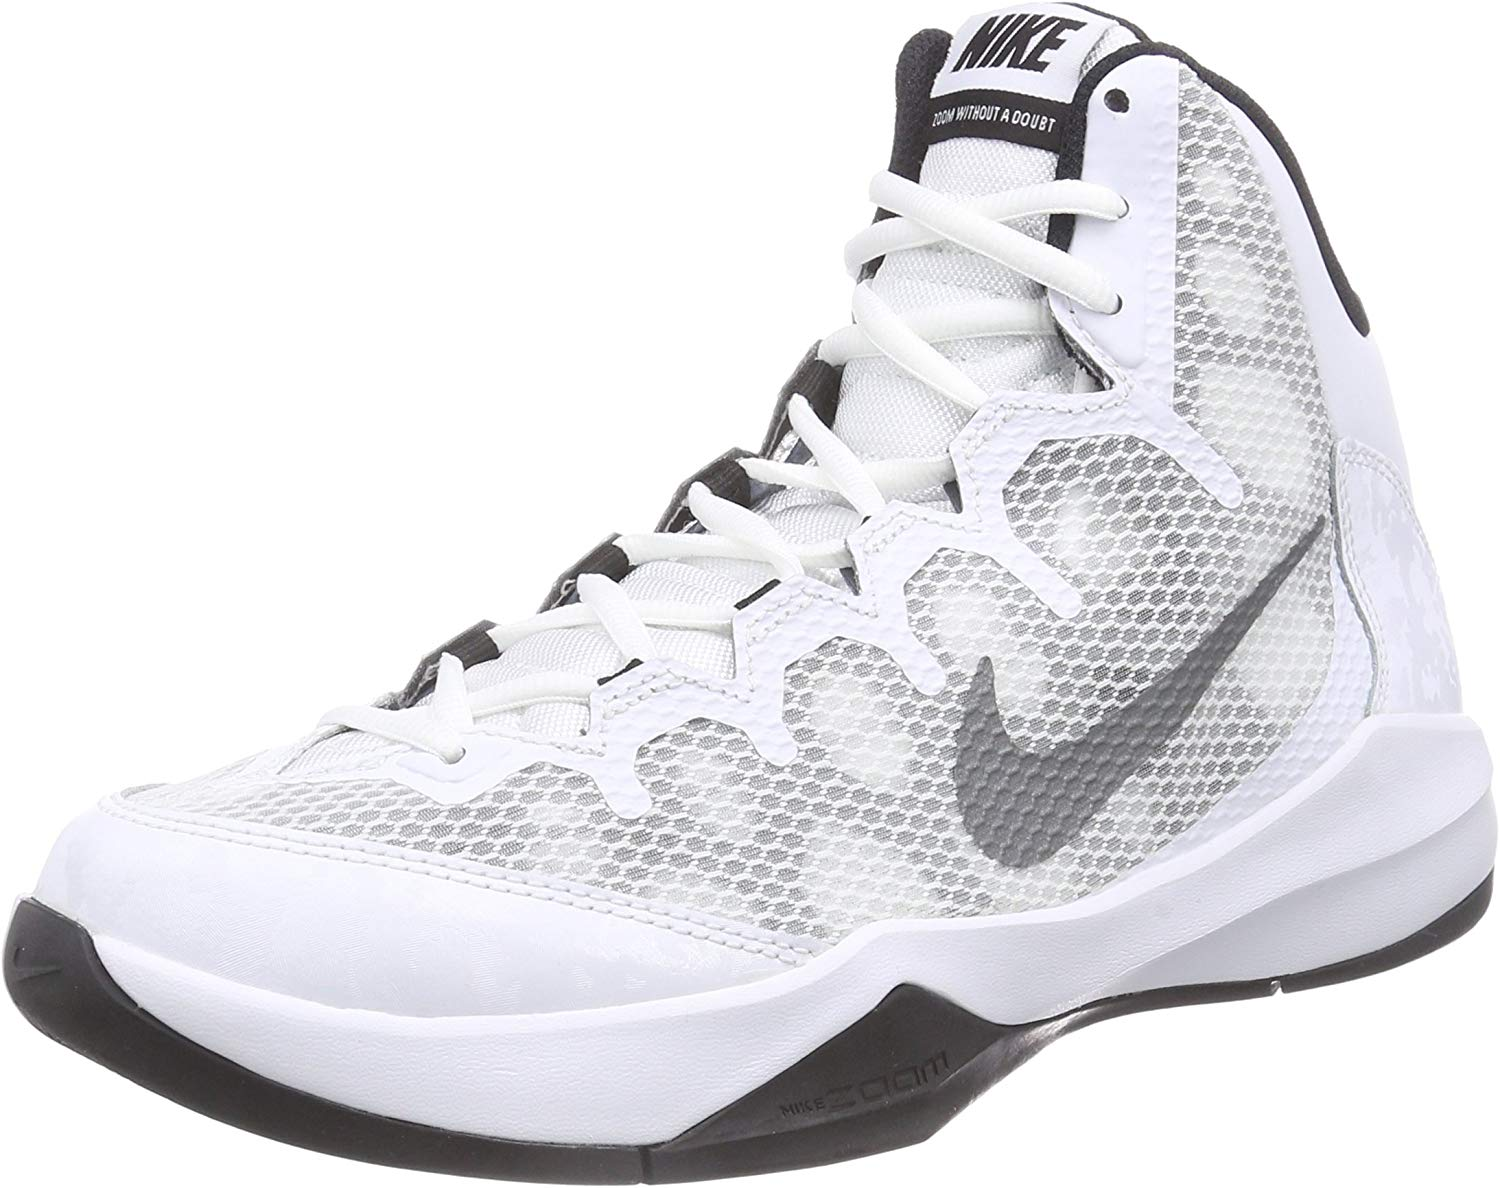 Nike Zoom Without Without A Doubt, Herren Turnschuhe  hier hat das neuste